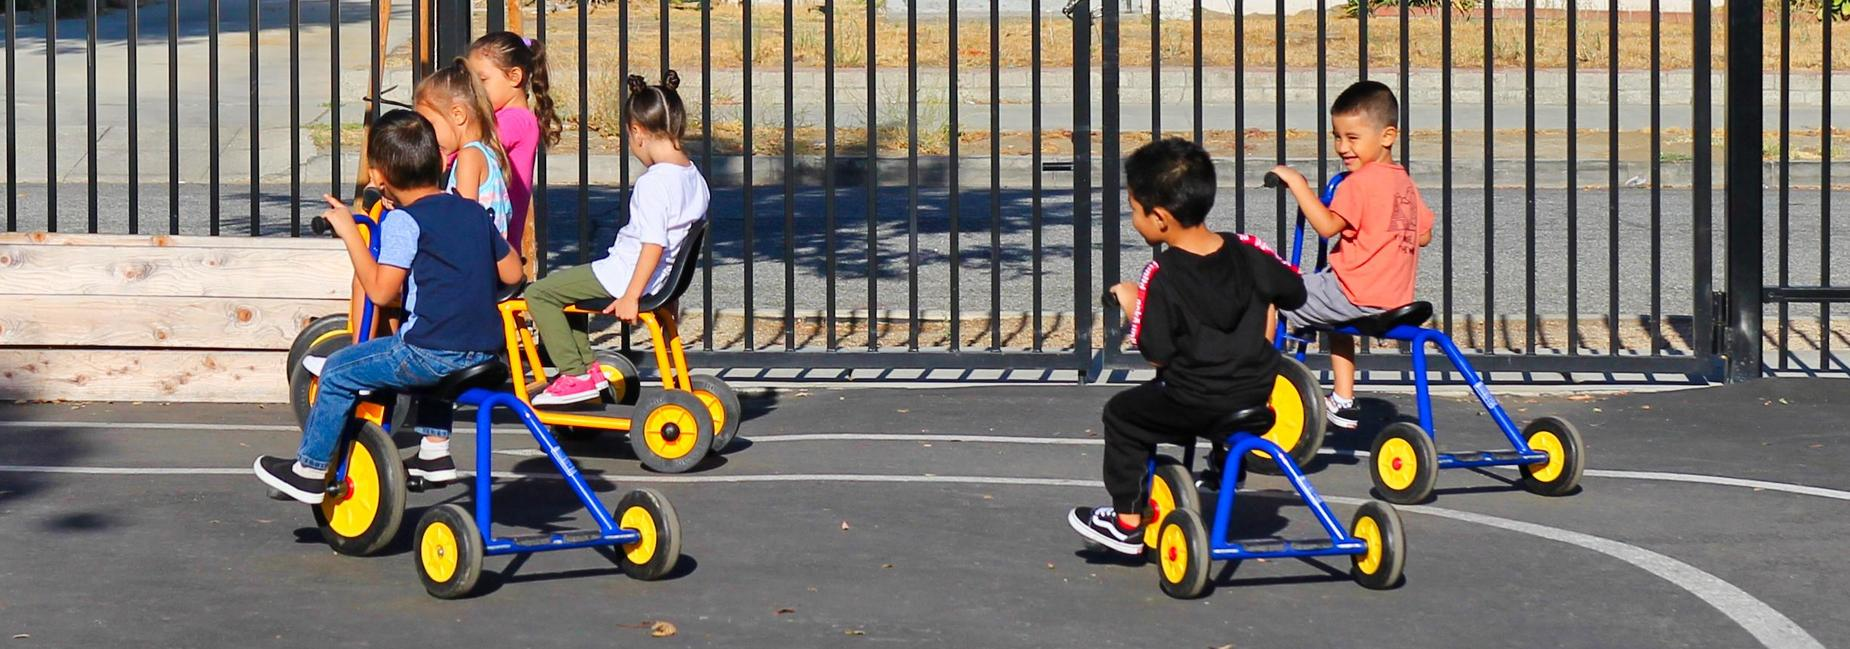 Students racing around on tricycles